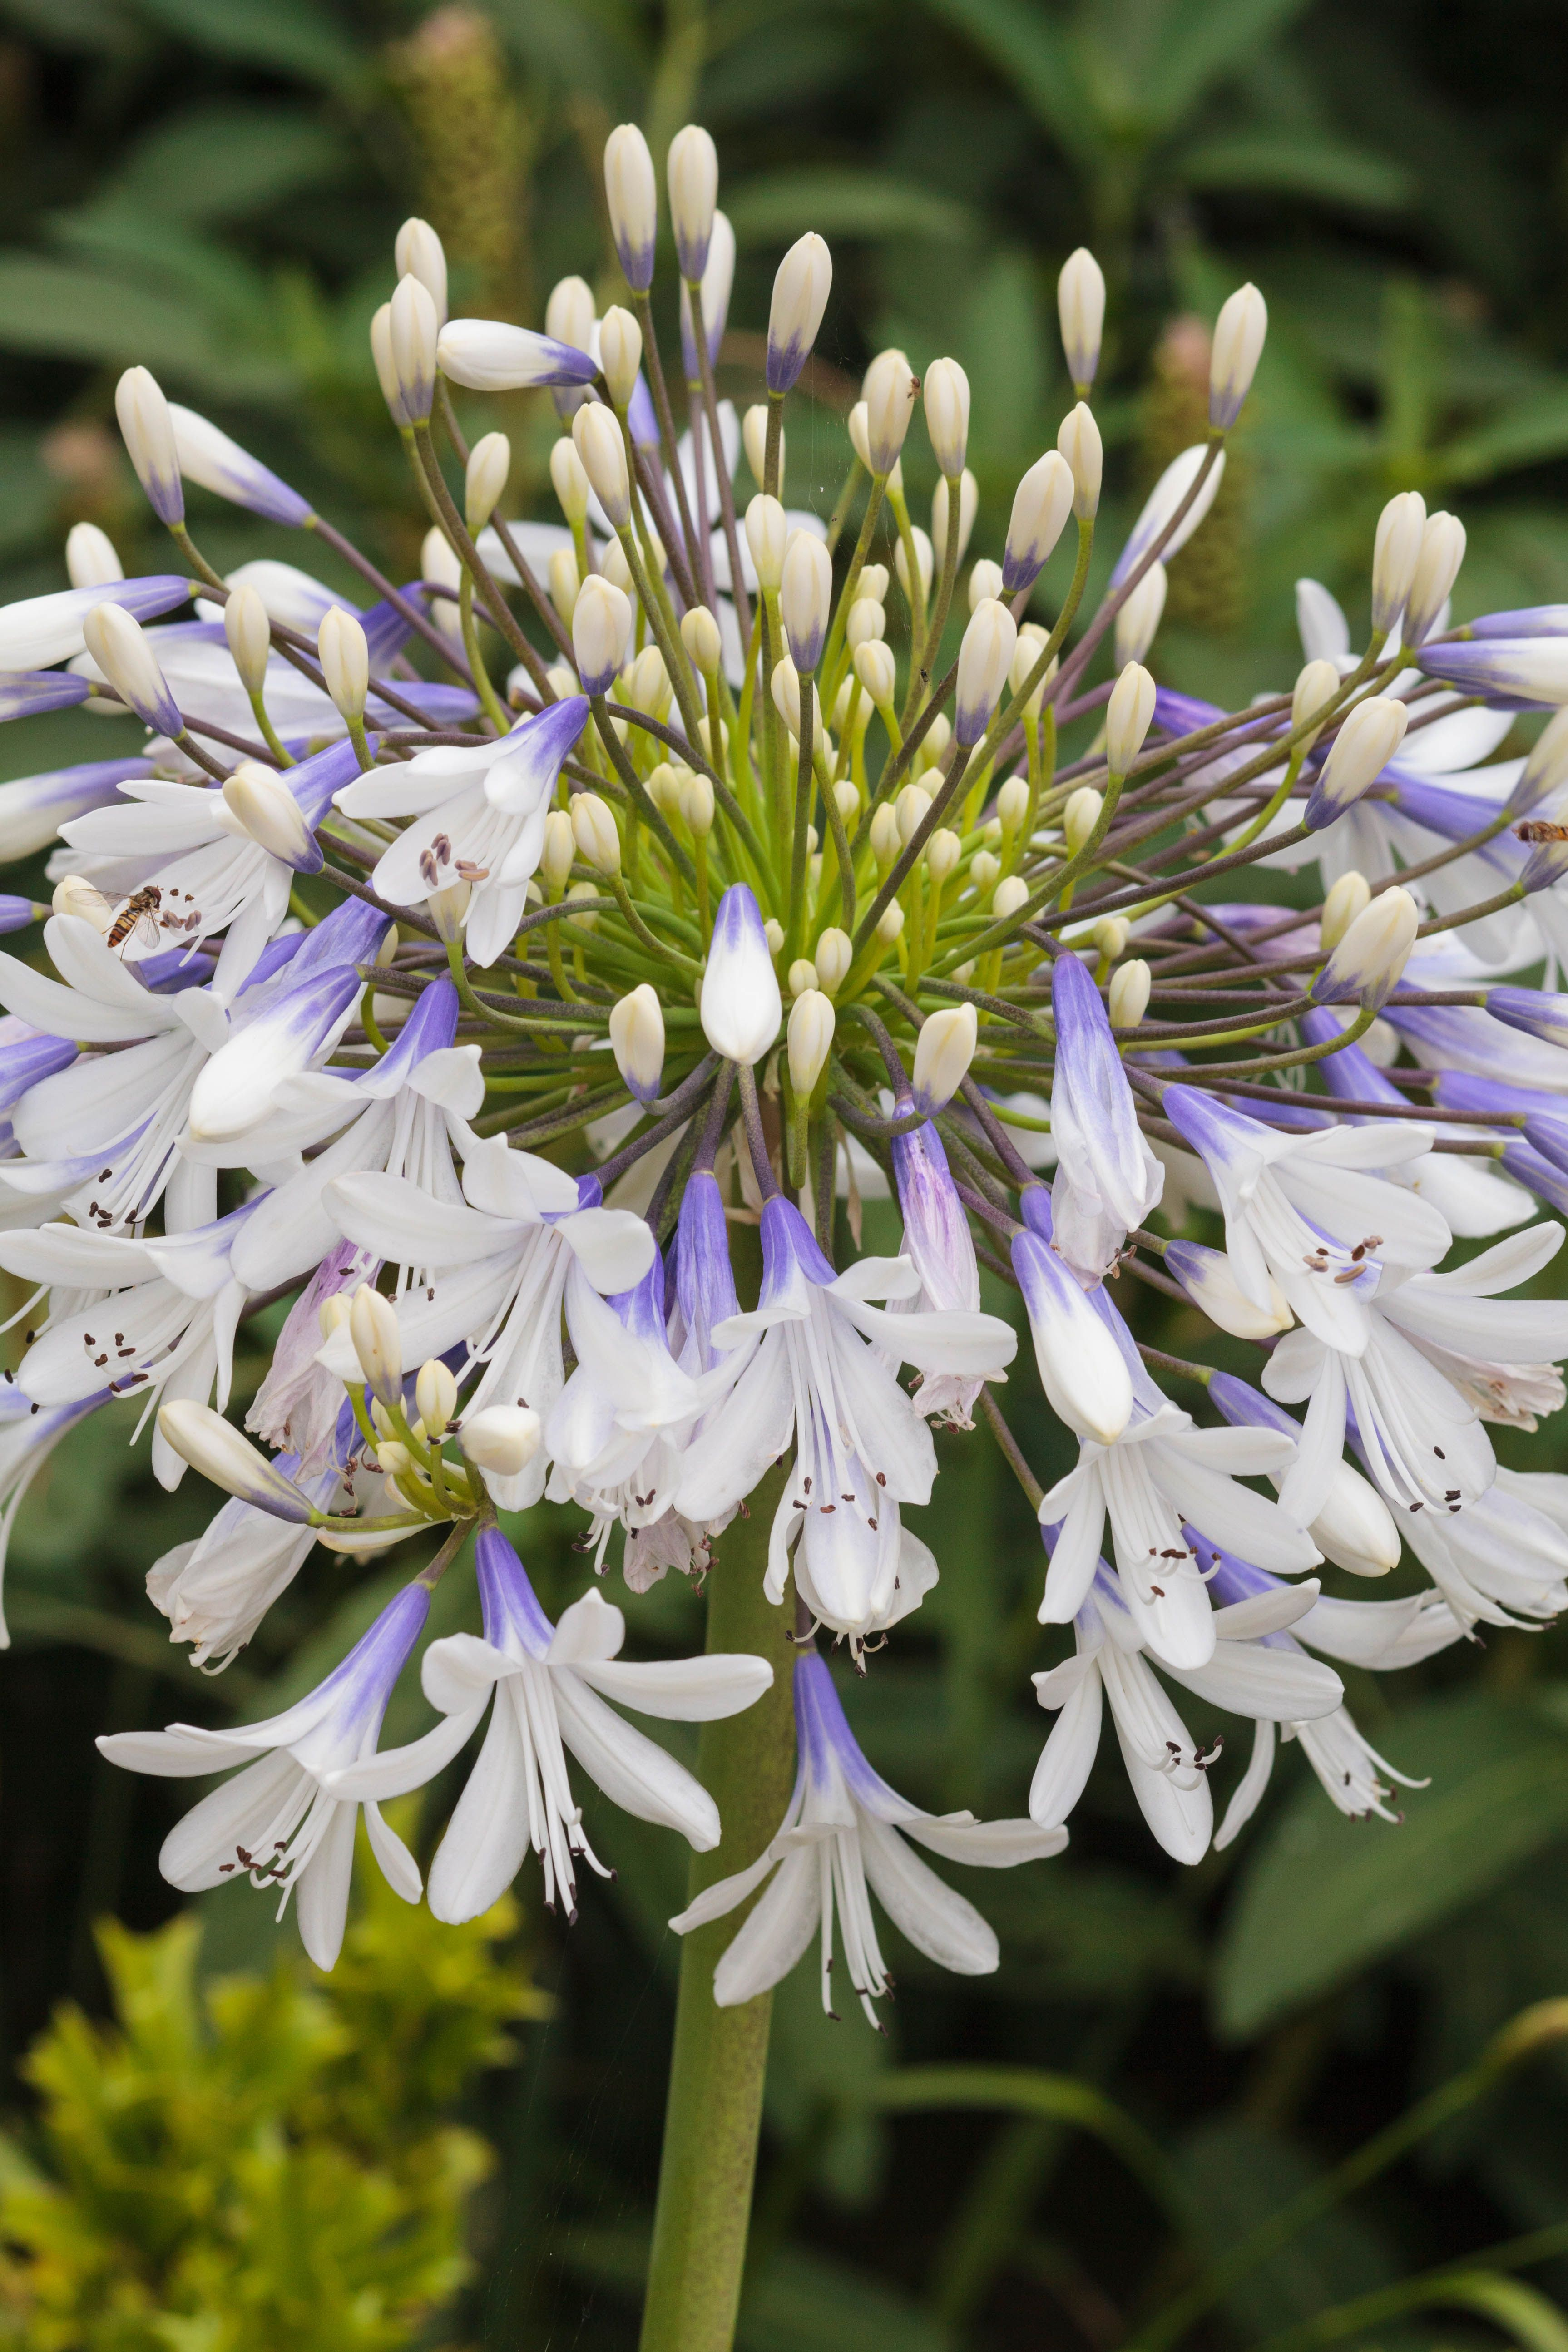 Prolific Flowering Queen Mum Lily Of The Nile Monrovia Queen Mum Lily Of The Nile Asian Landscape Monrovia Plants Flower Pots